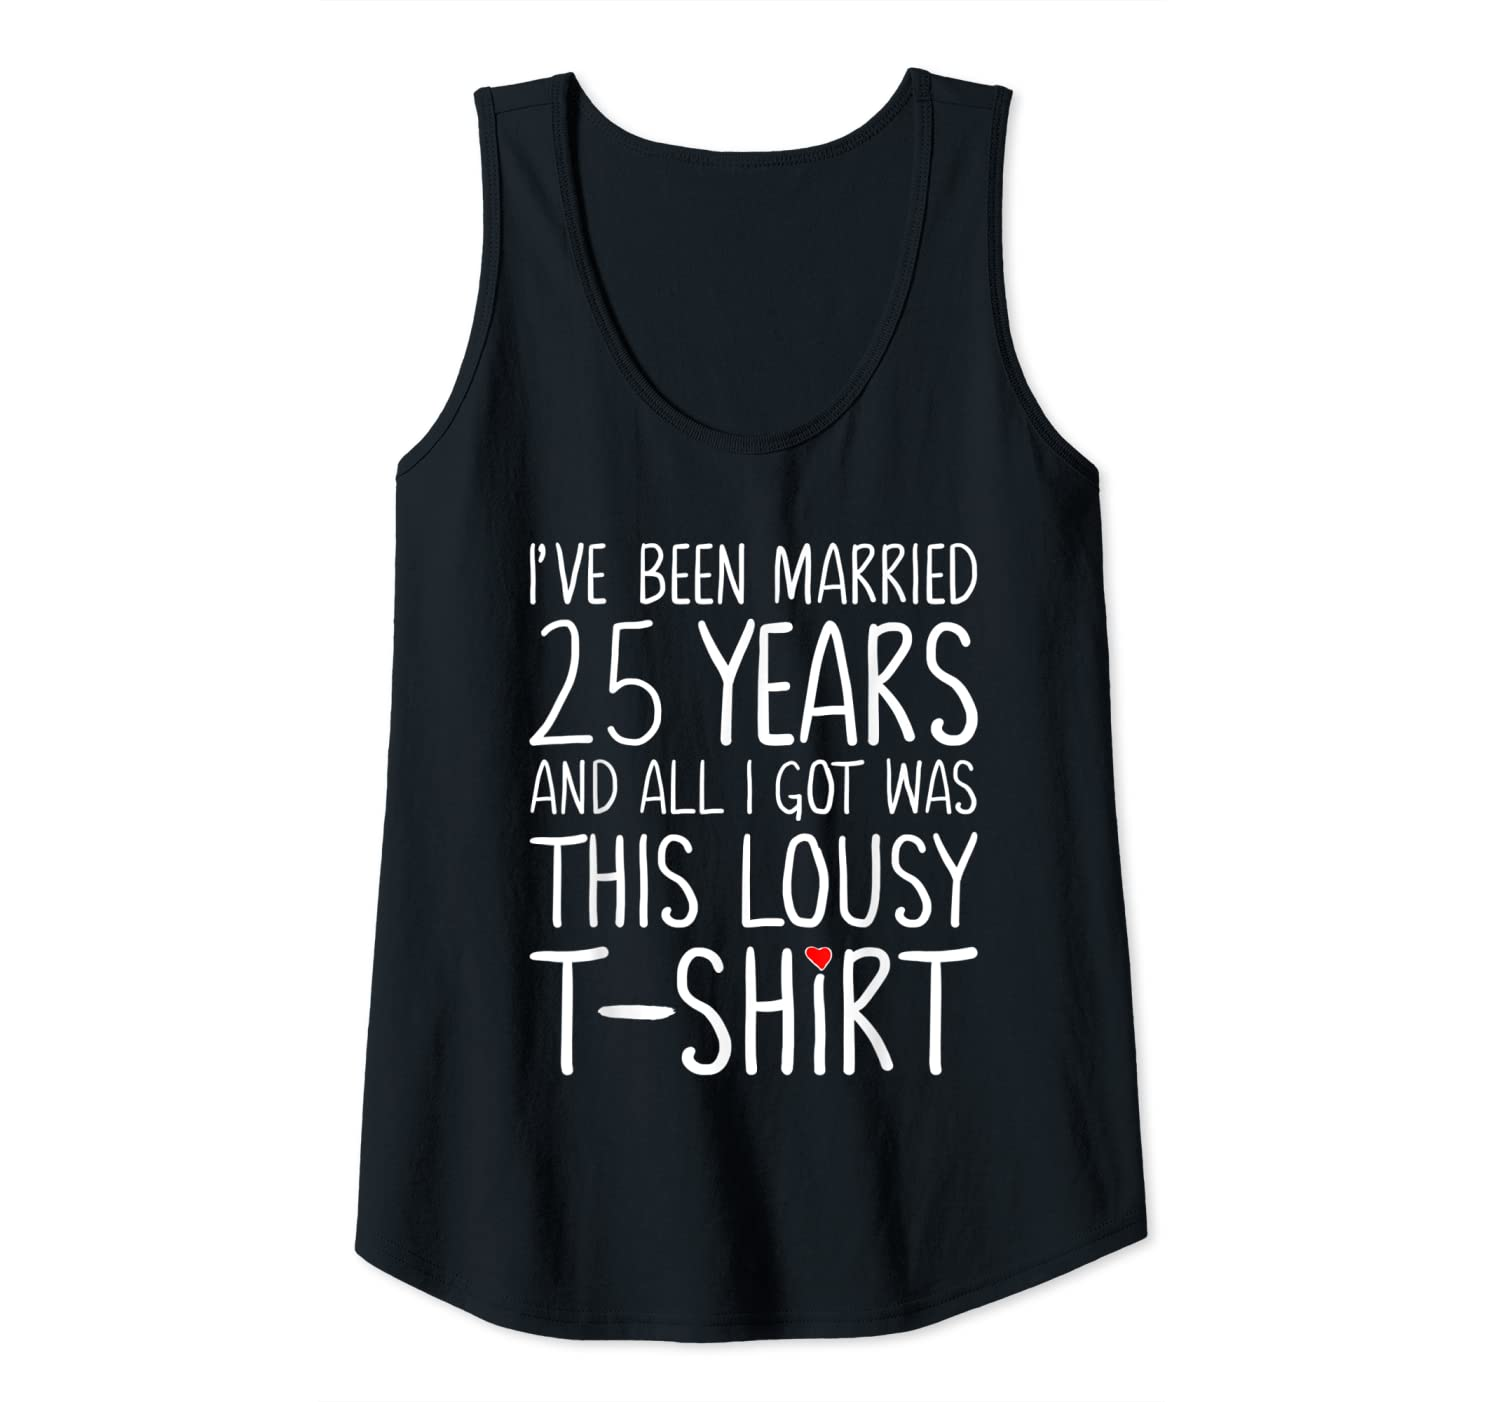 25th Wedding Anniversary Gift Ideas For Him: 25th Wedding Anniversary Gifts For Him & Her Couples